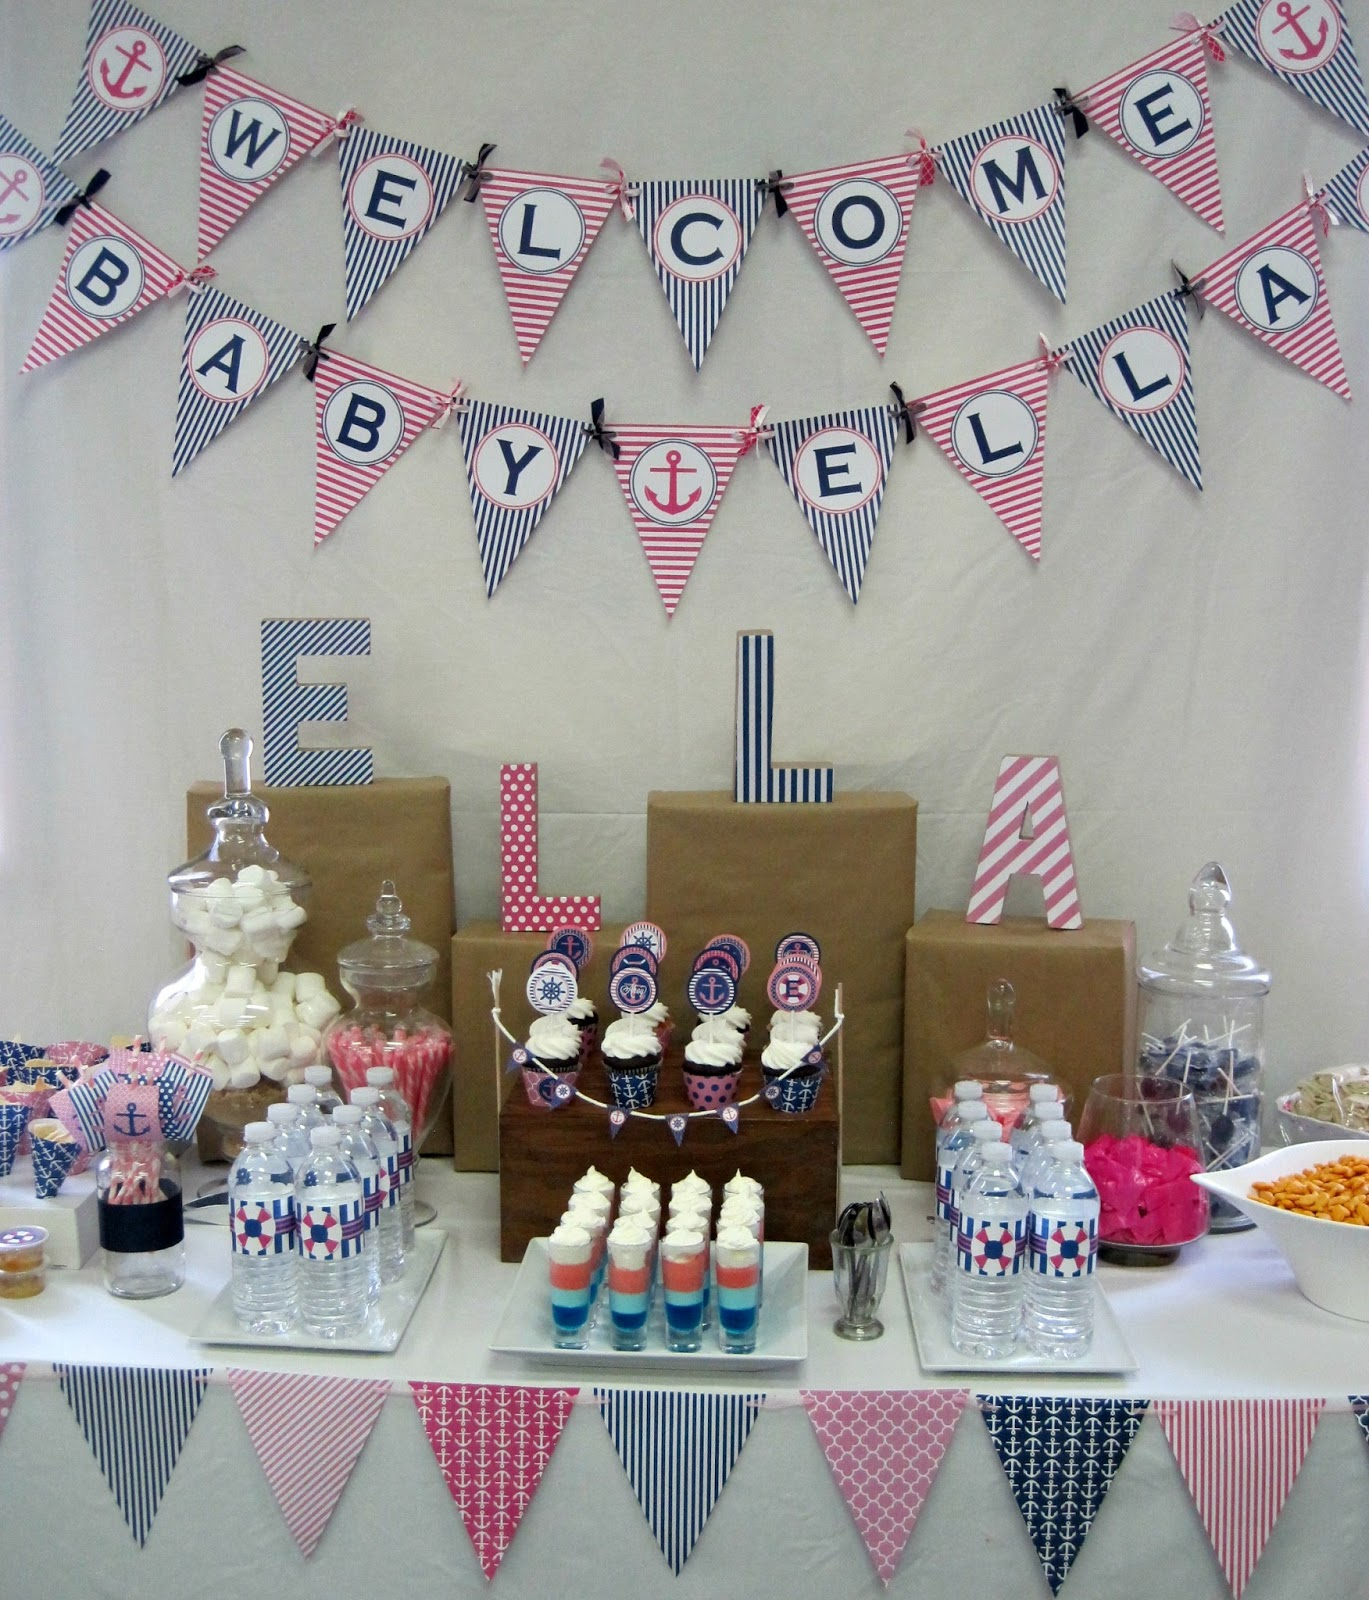 33 unique nautical baby shower ideas table decorating ideas. Black Bedroom Furniture Sets. Home Design Ideas